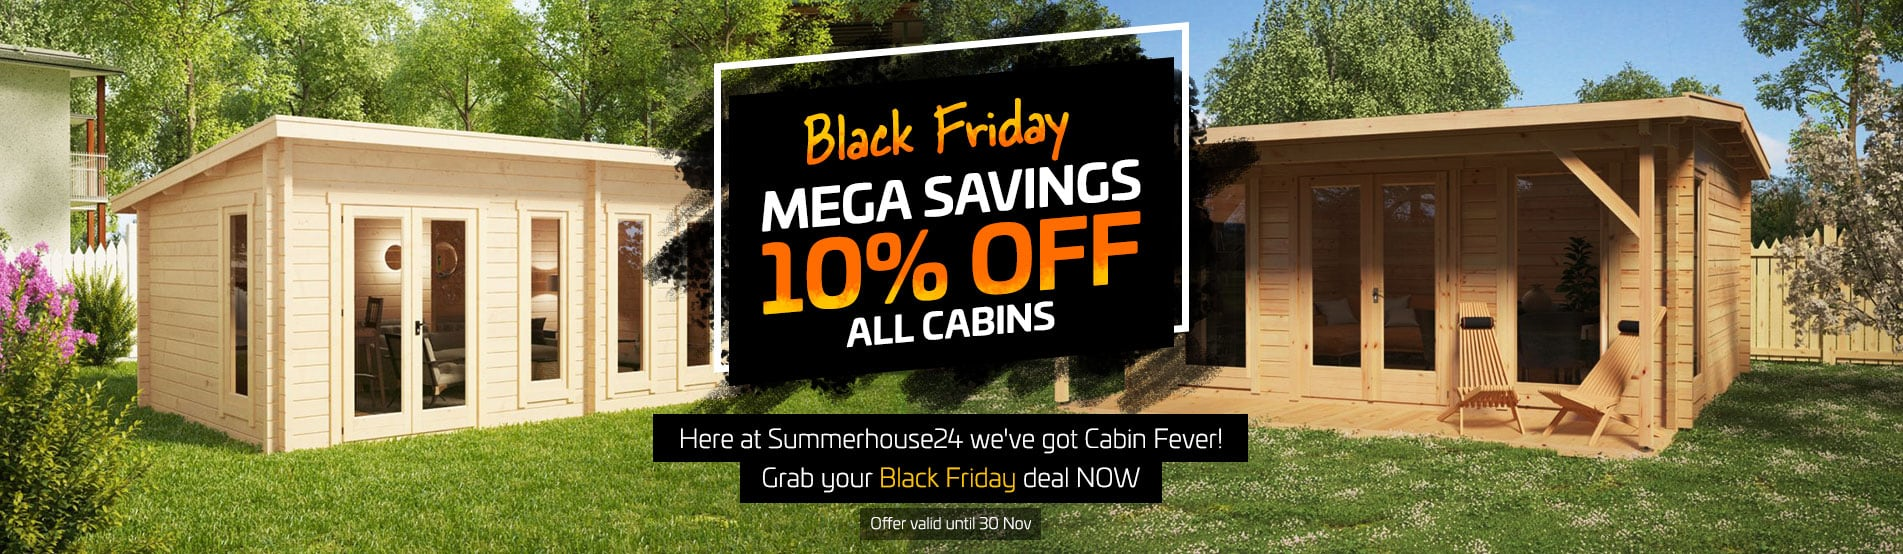 Black Friday Mega Savings - 10% off from all cabins